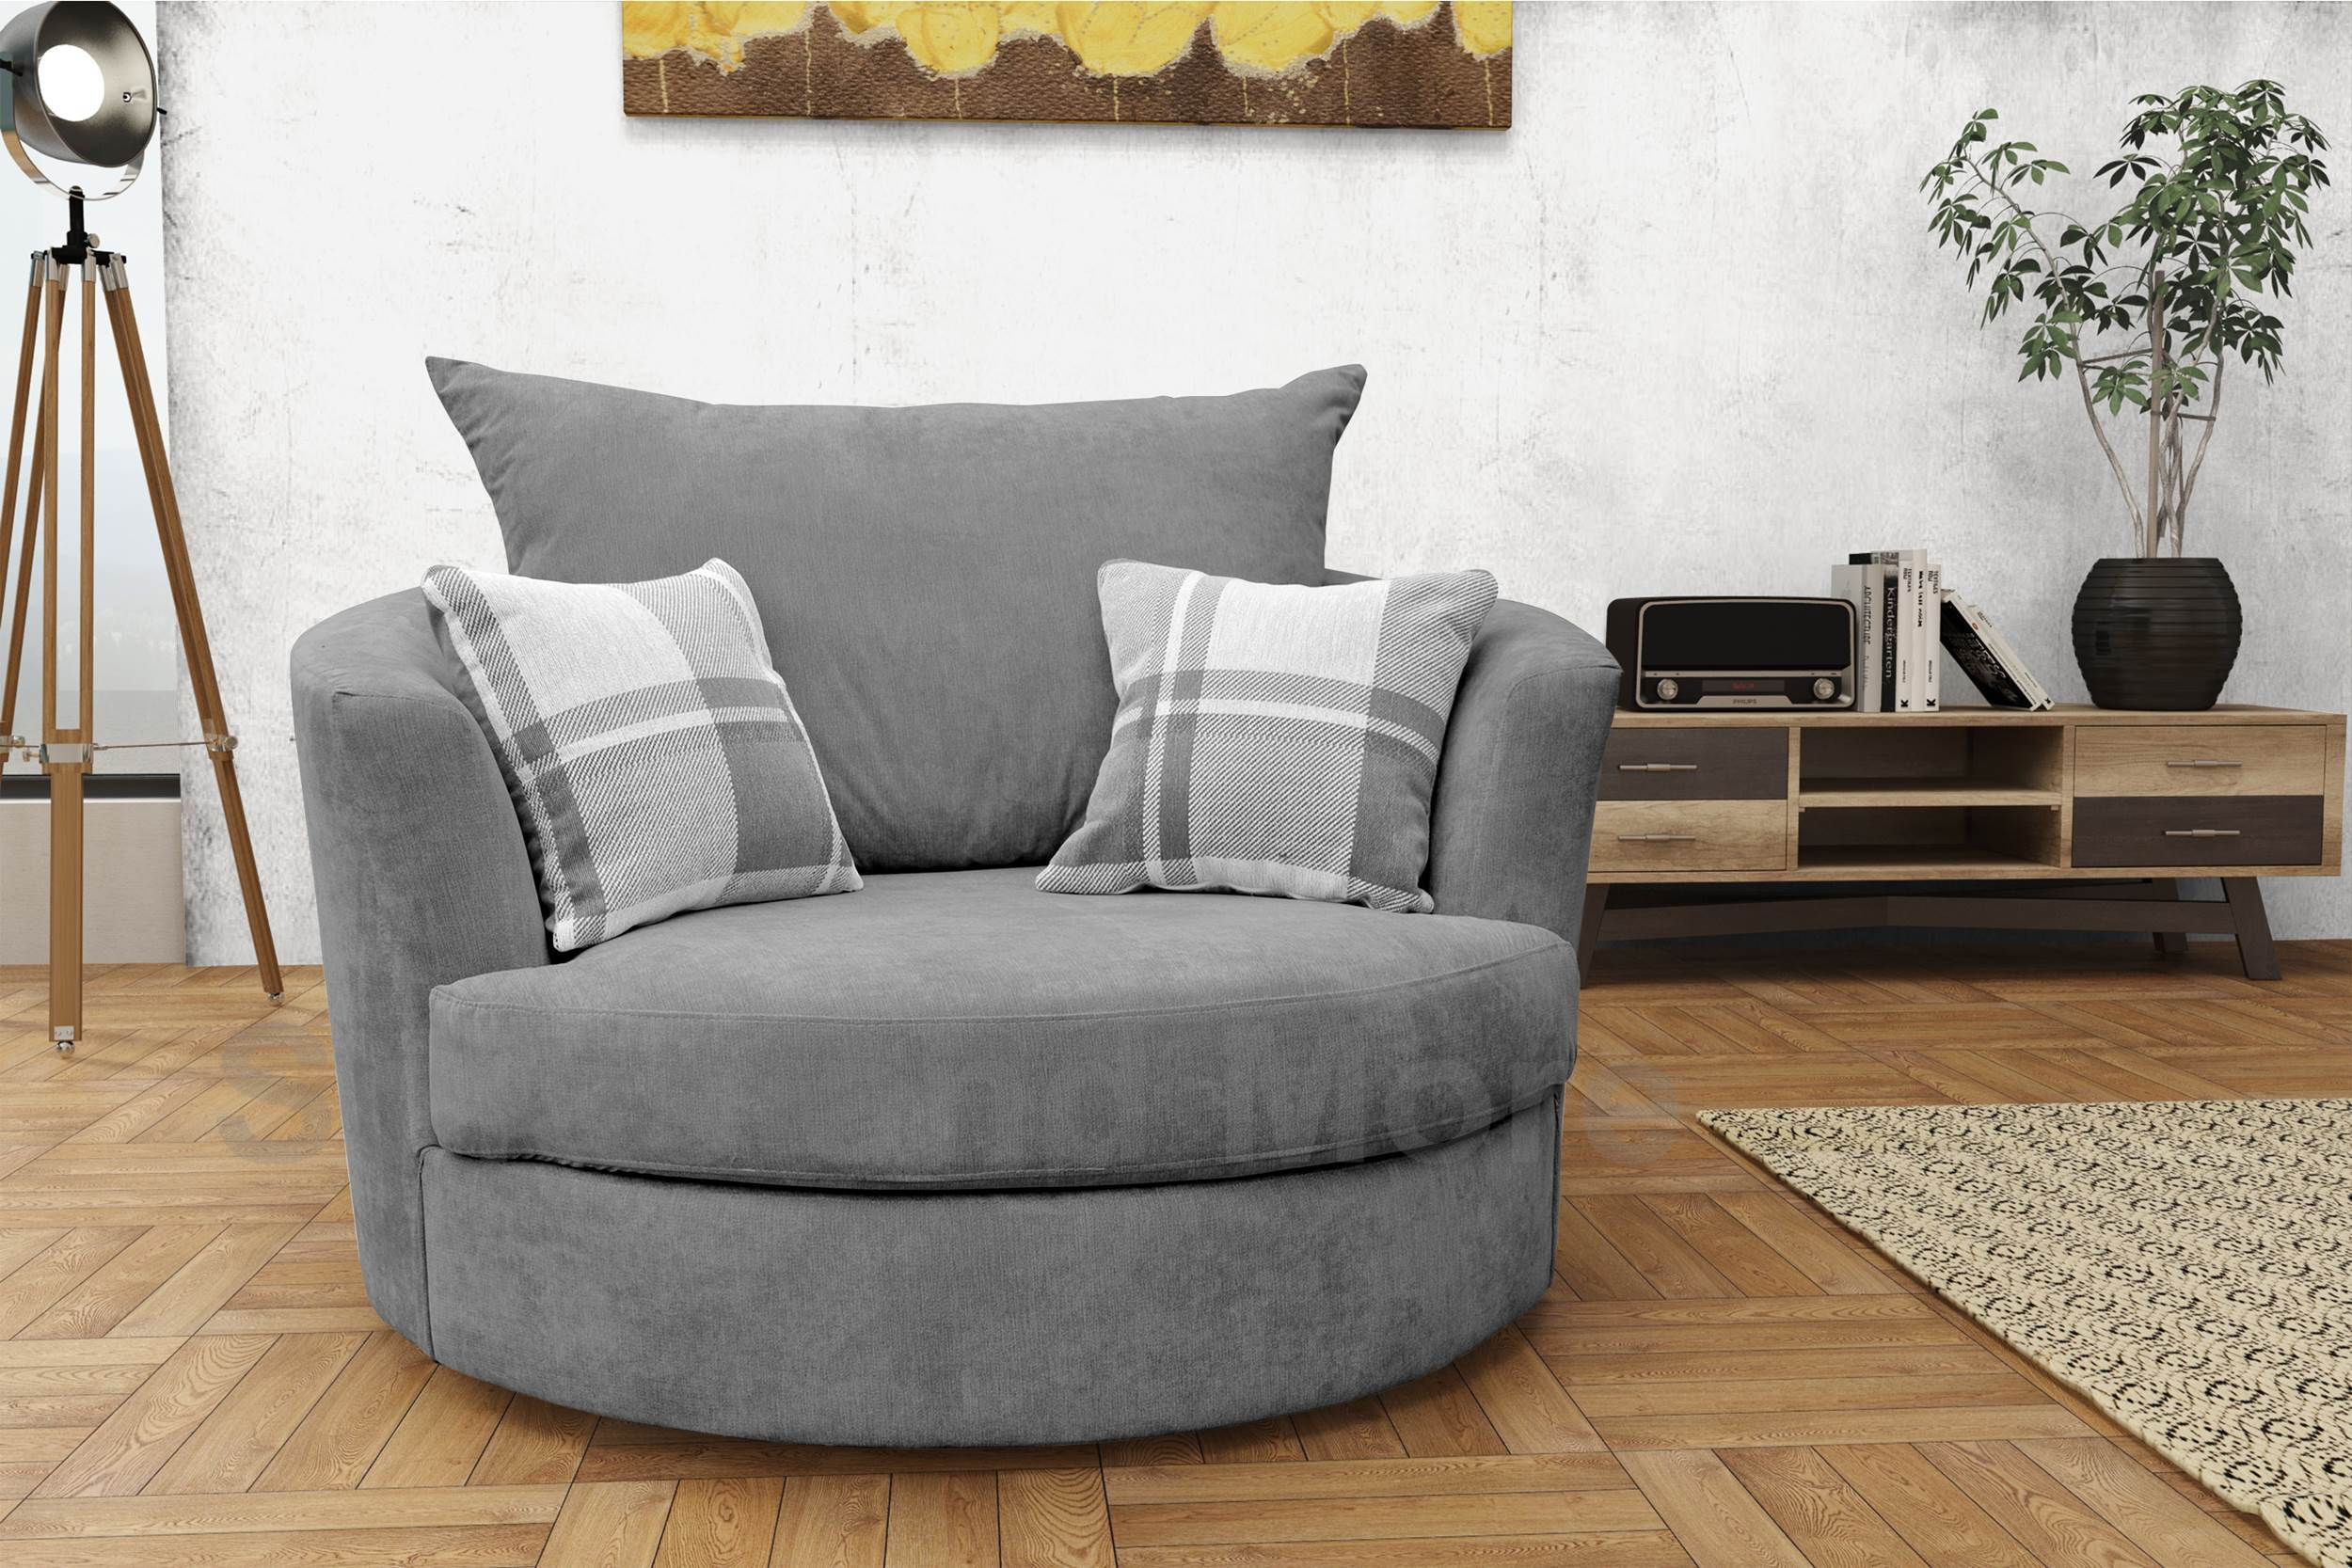 snuggle sofa and swivel chair kroehler furniture sofas large round cuddle fabric grey cream brown